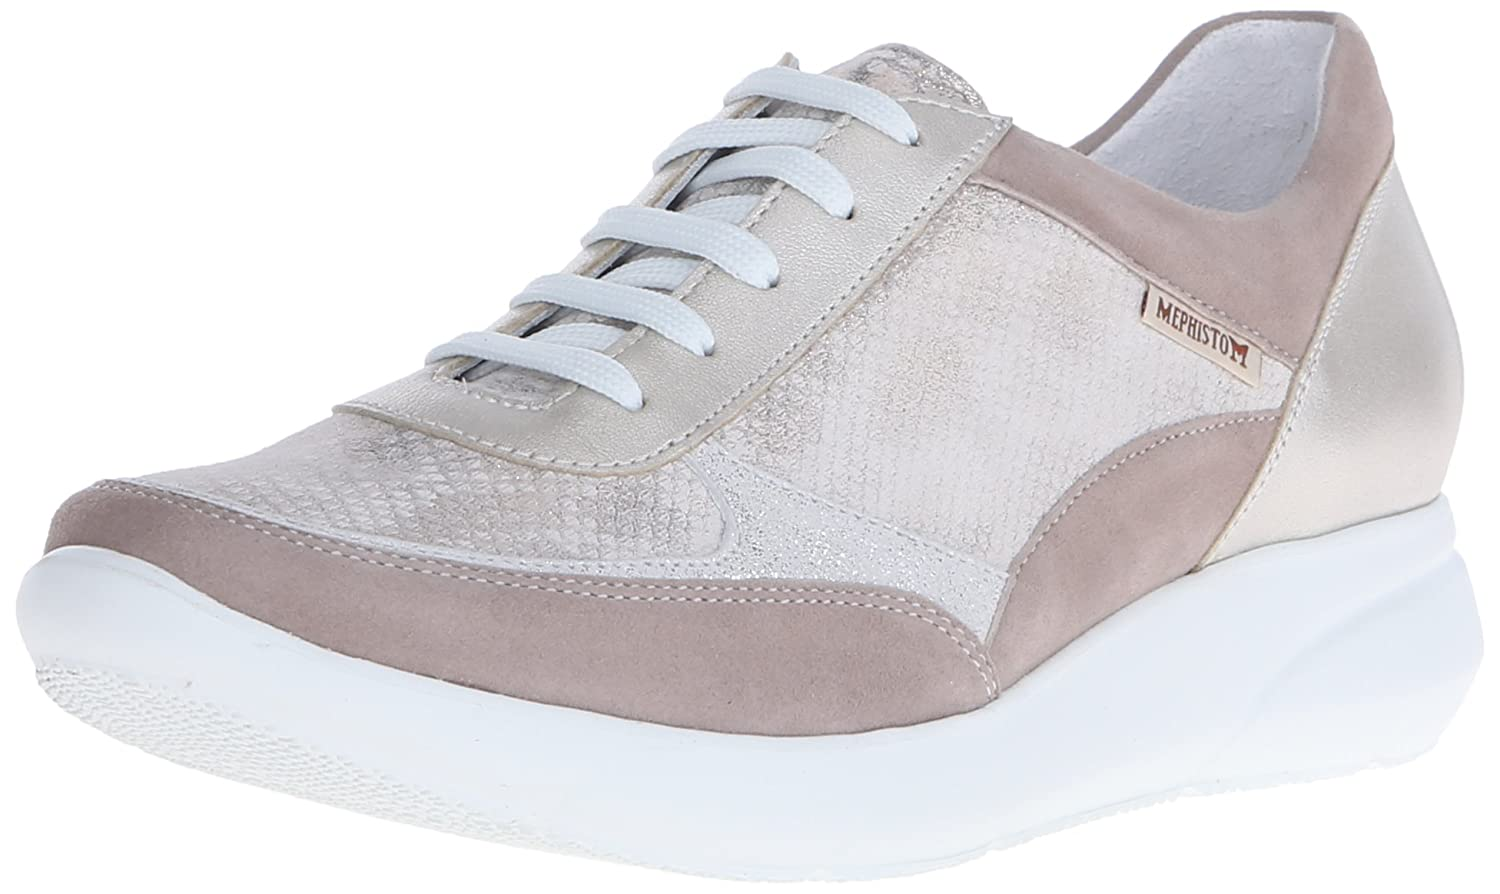 Mephisto Women's Diane Oxford B014GCL20Y 5.5 B(M) US|Warm Grey Velcalf Premium/Light Sand Savana/Mithril Perl Calfskin/White Fashion